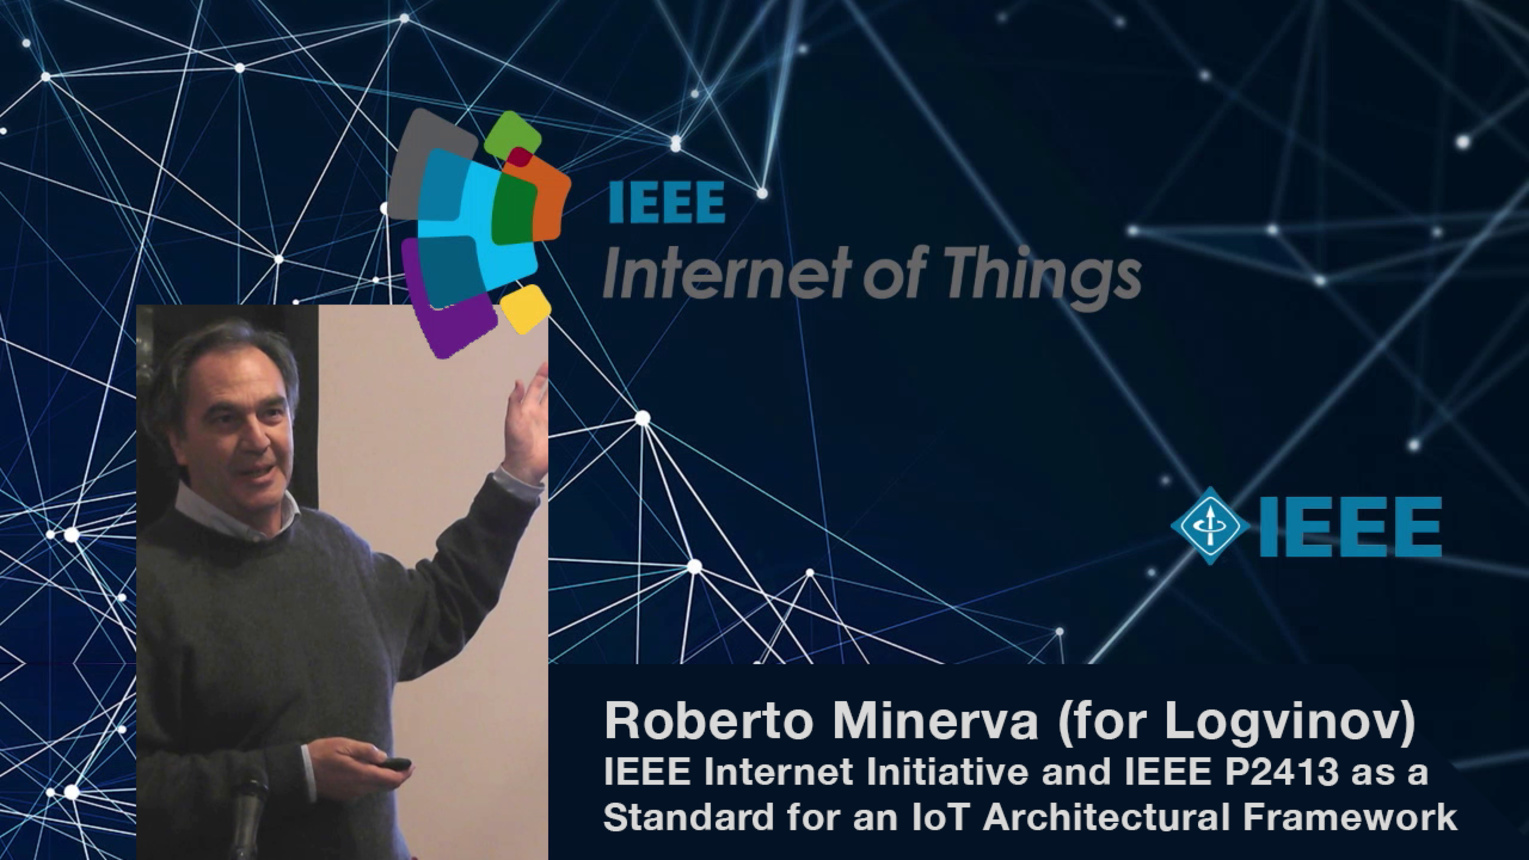 Roberto Minerva for Oleg Logvinov: IEEE Internet Initiative and IEEE P2413 - WF-IoT 2015